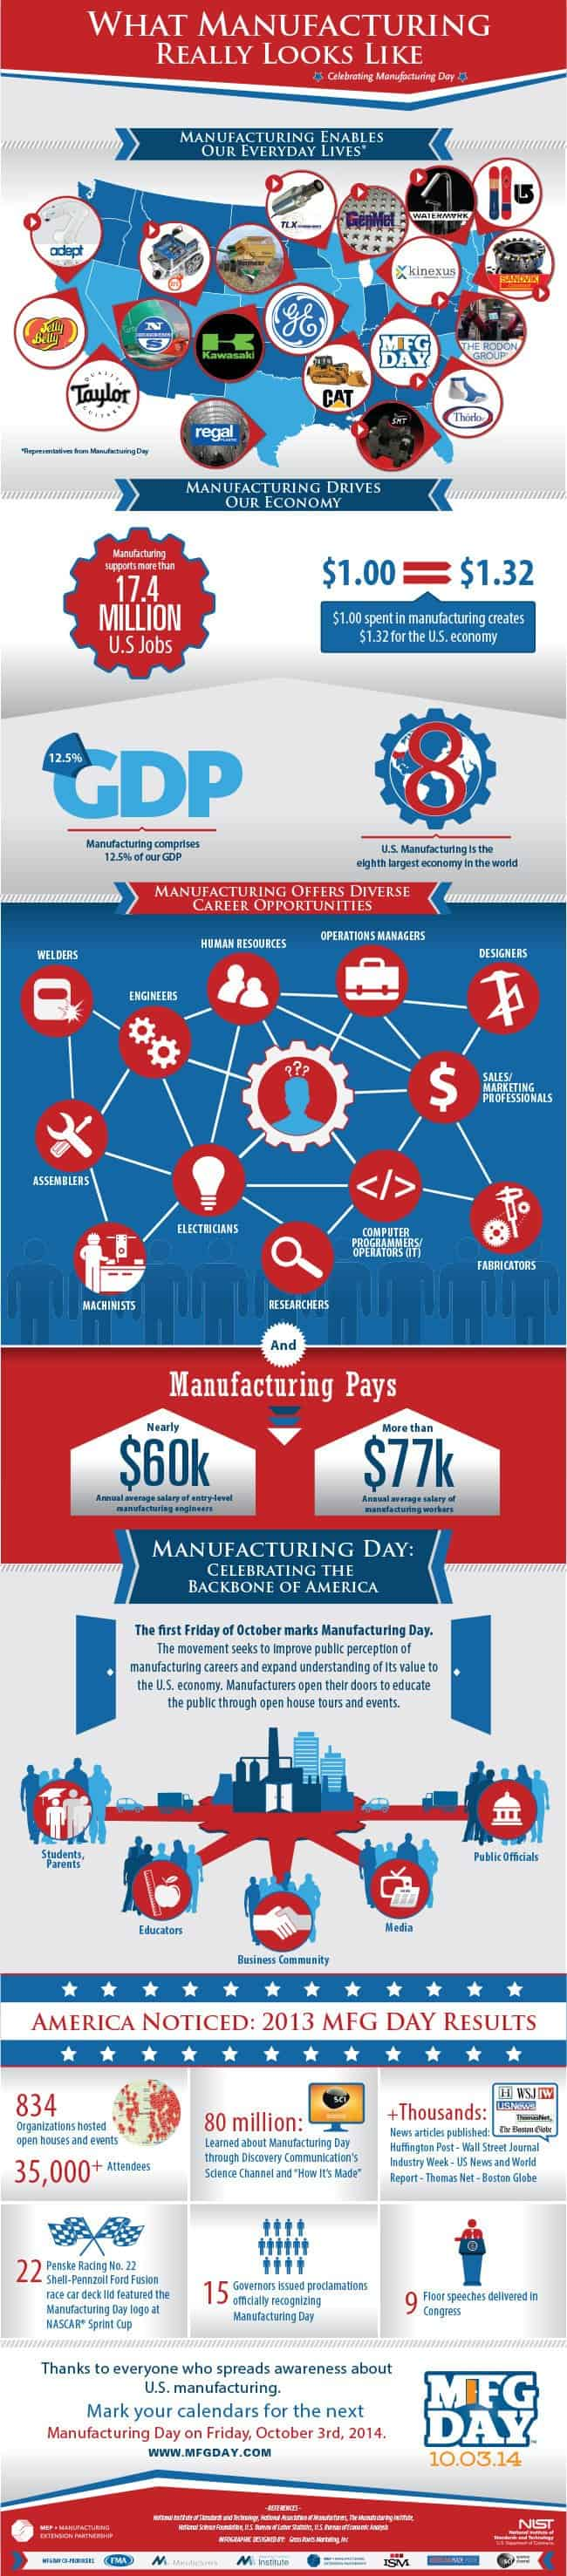 What manufacturing really looks like